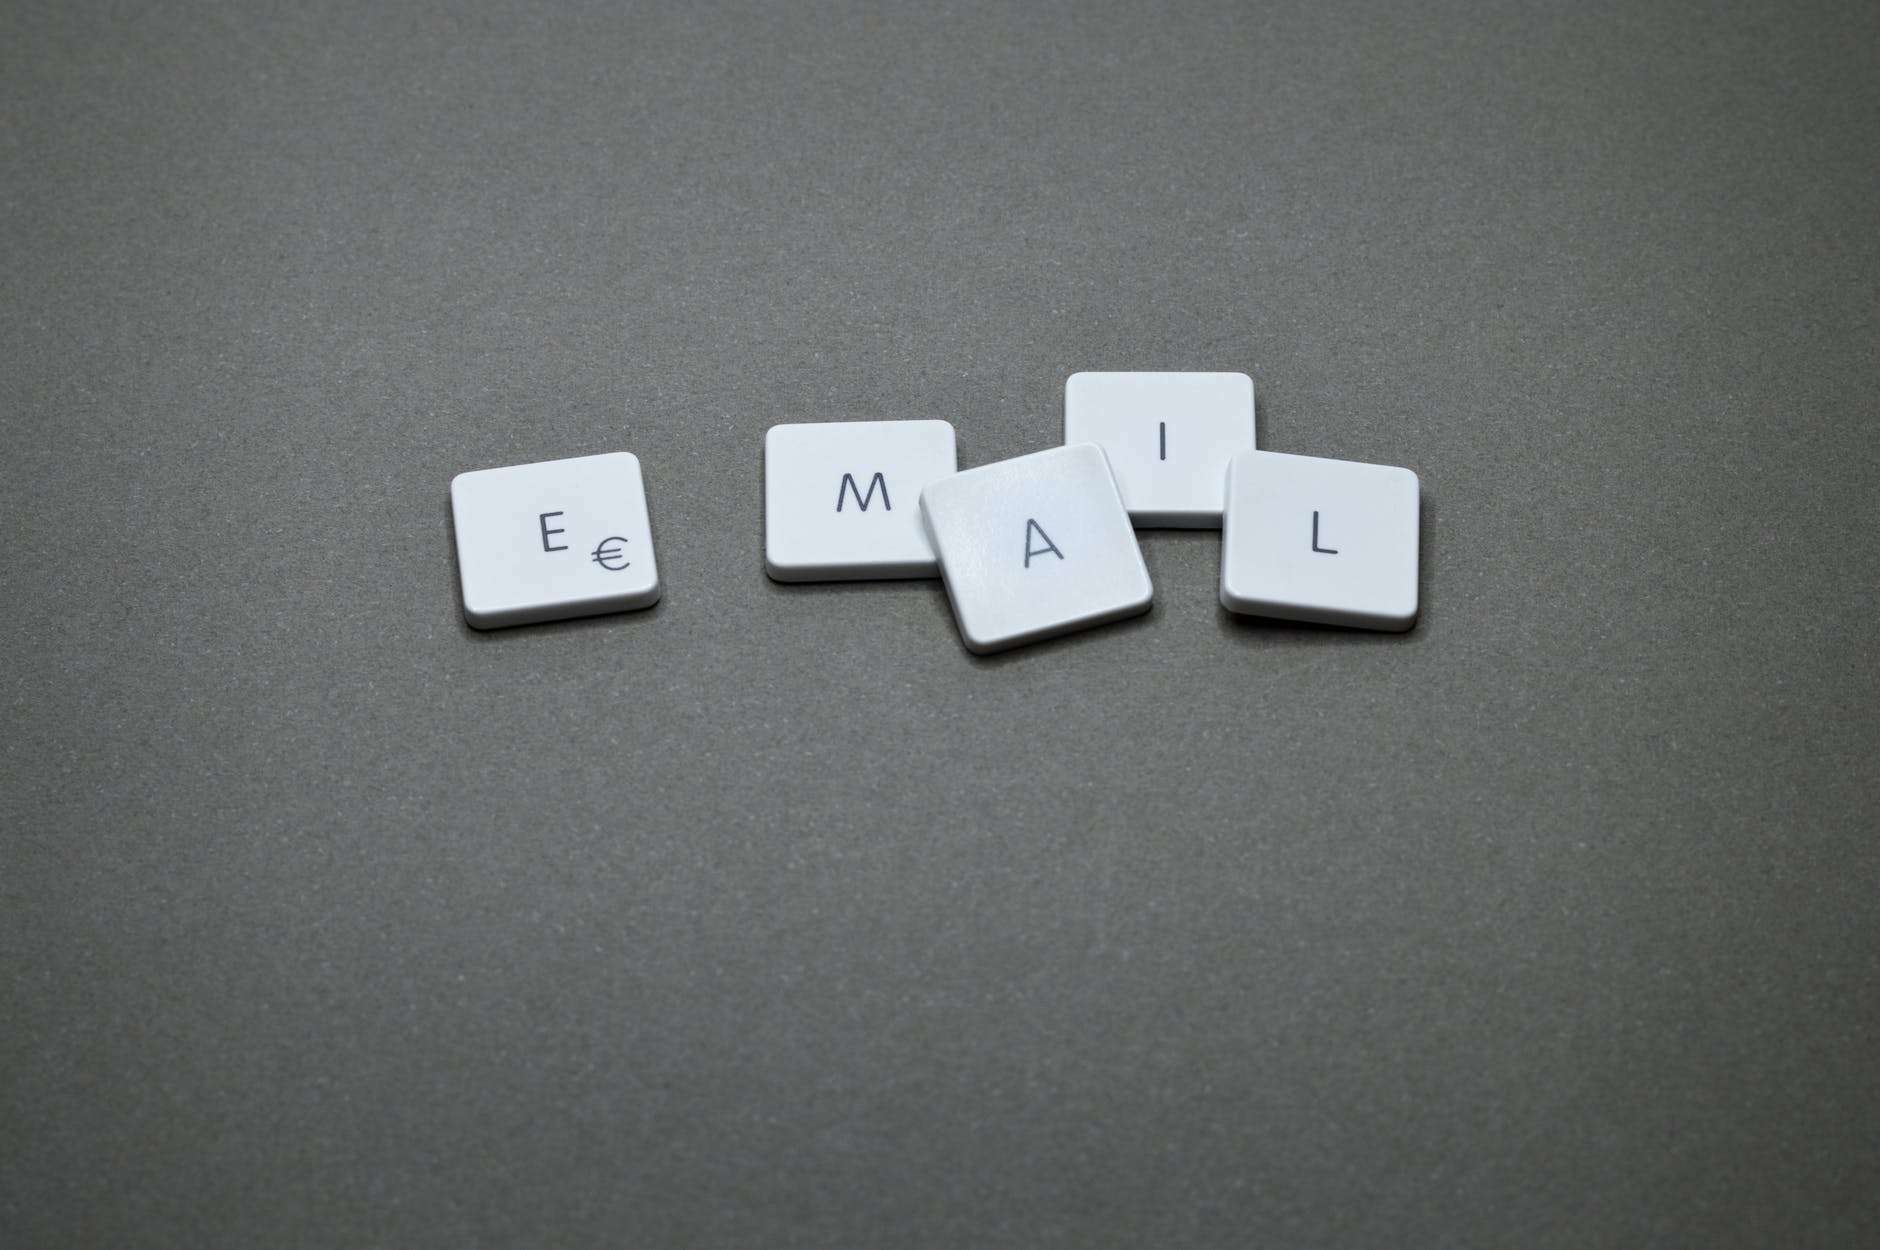 email blocks on the gray surface - Tips About Using Emails